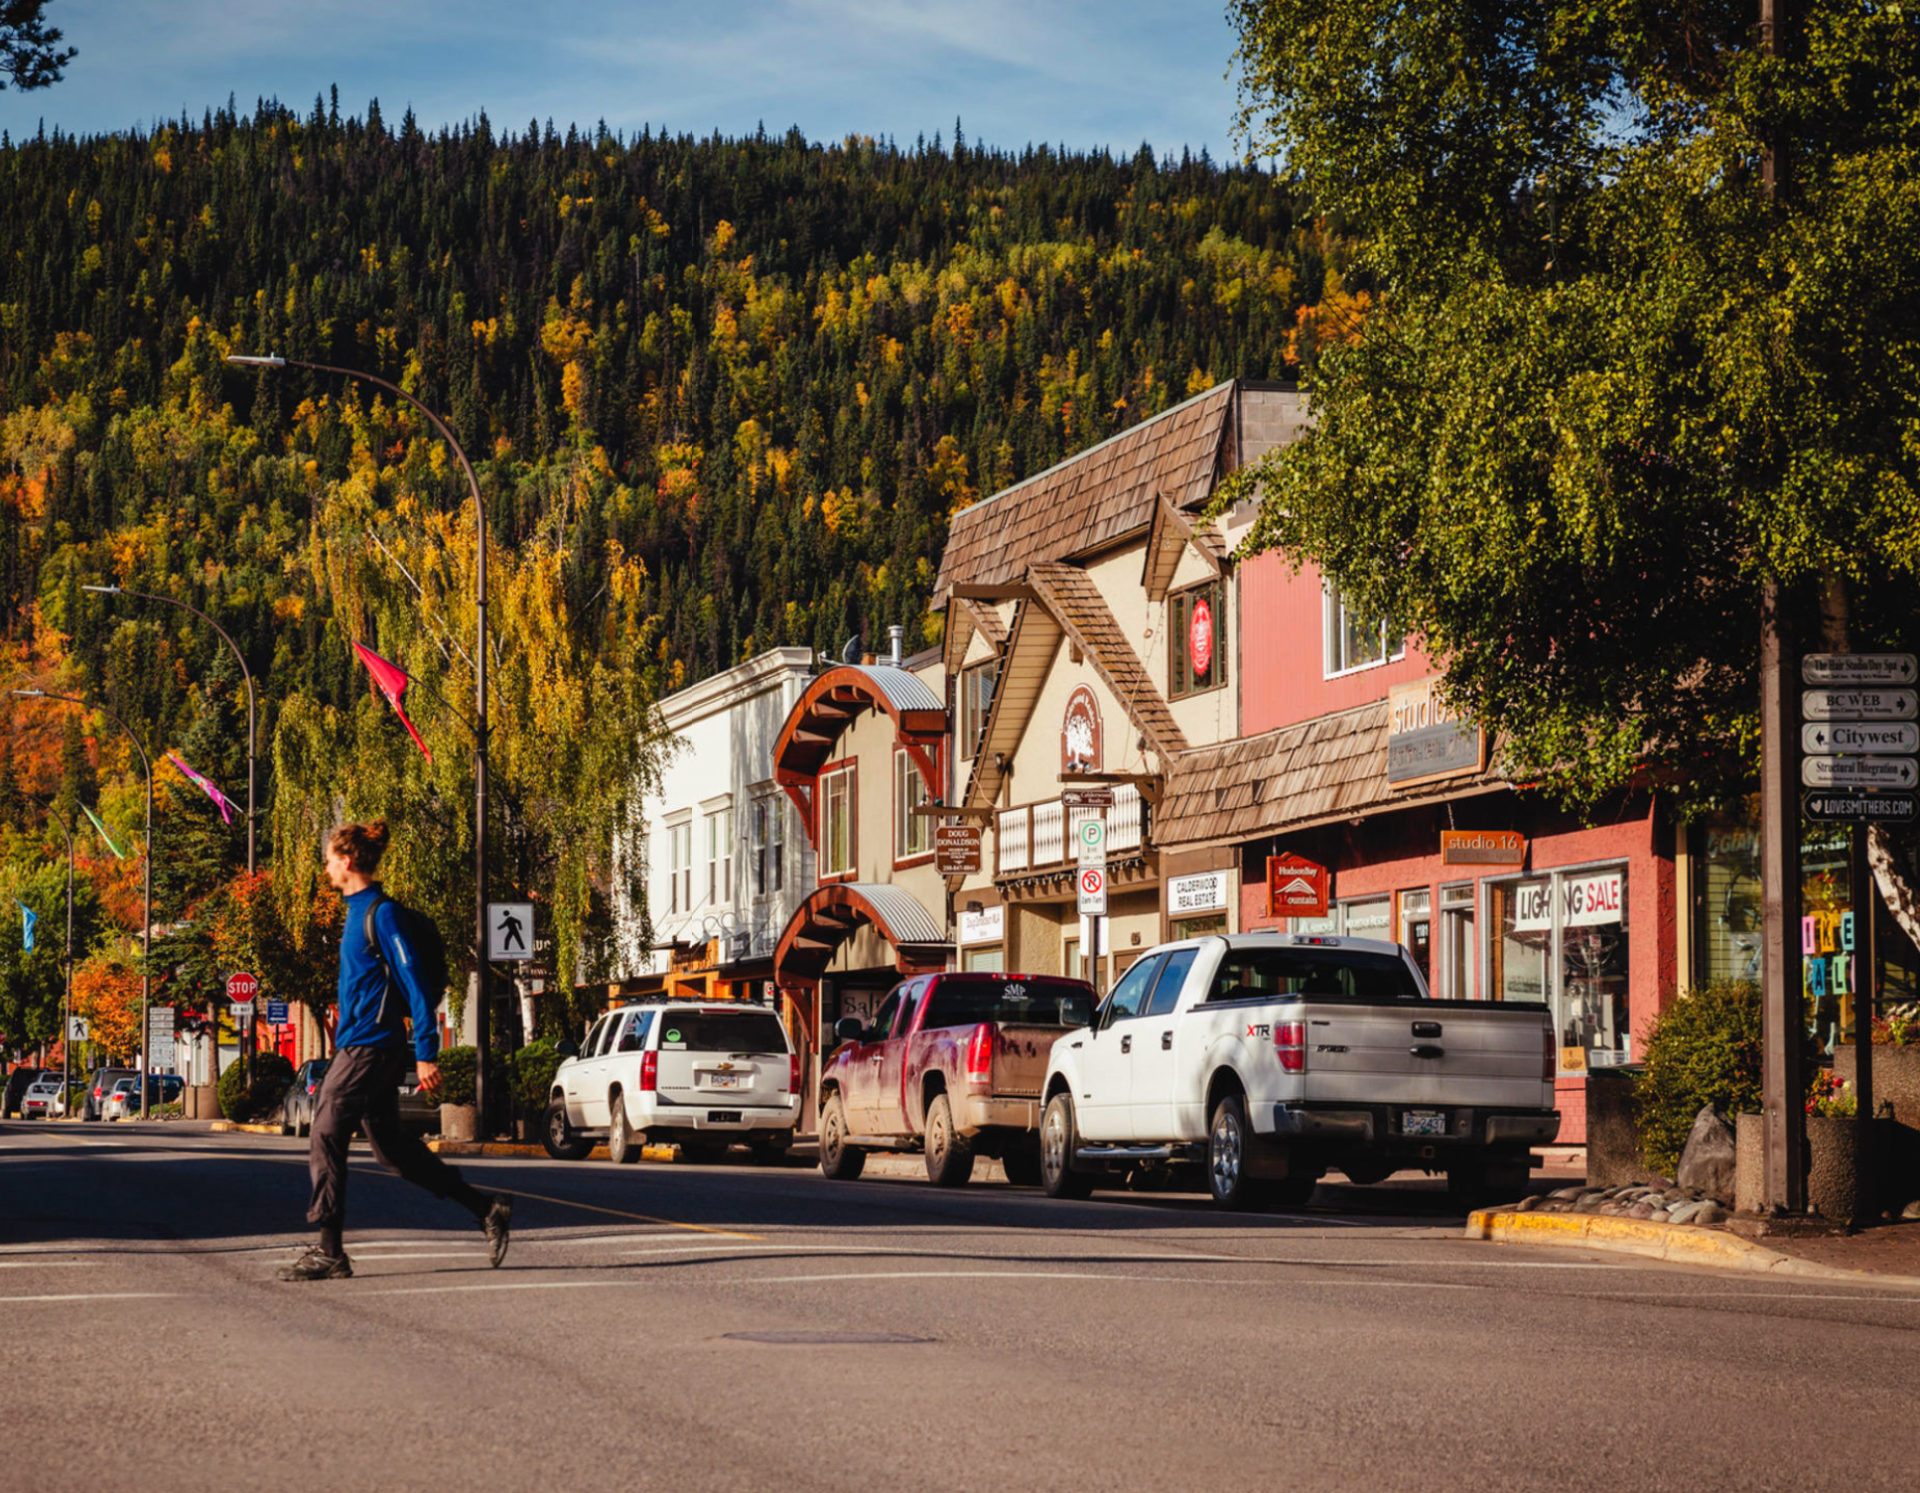 Smithers is known for its independent businesses. Photo by Northern BC Tourism/Marty Clemens.